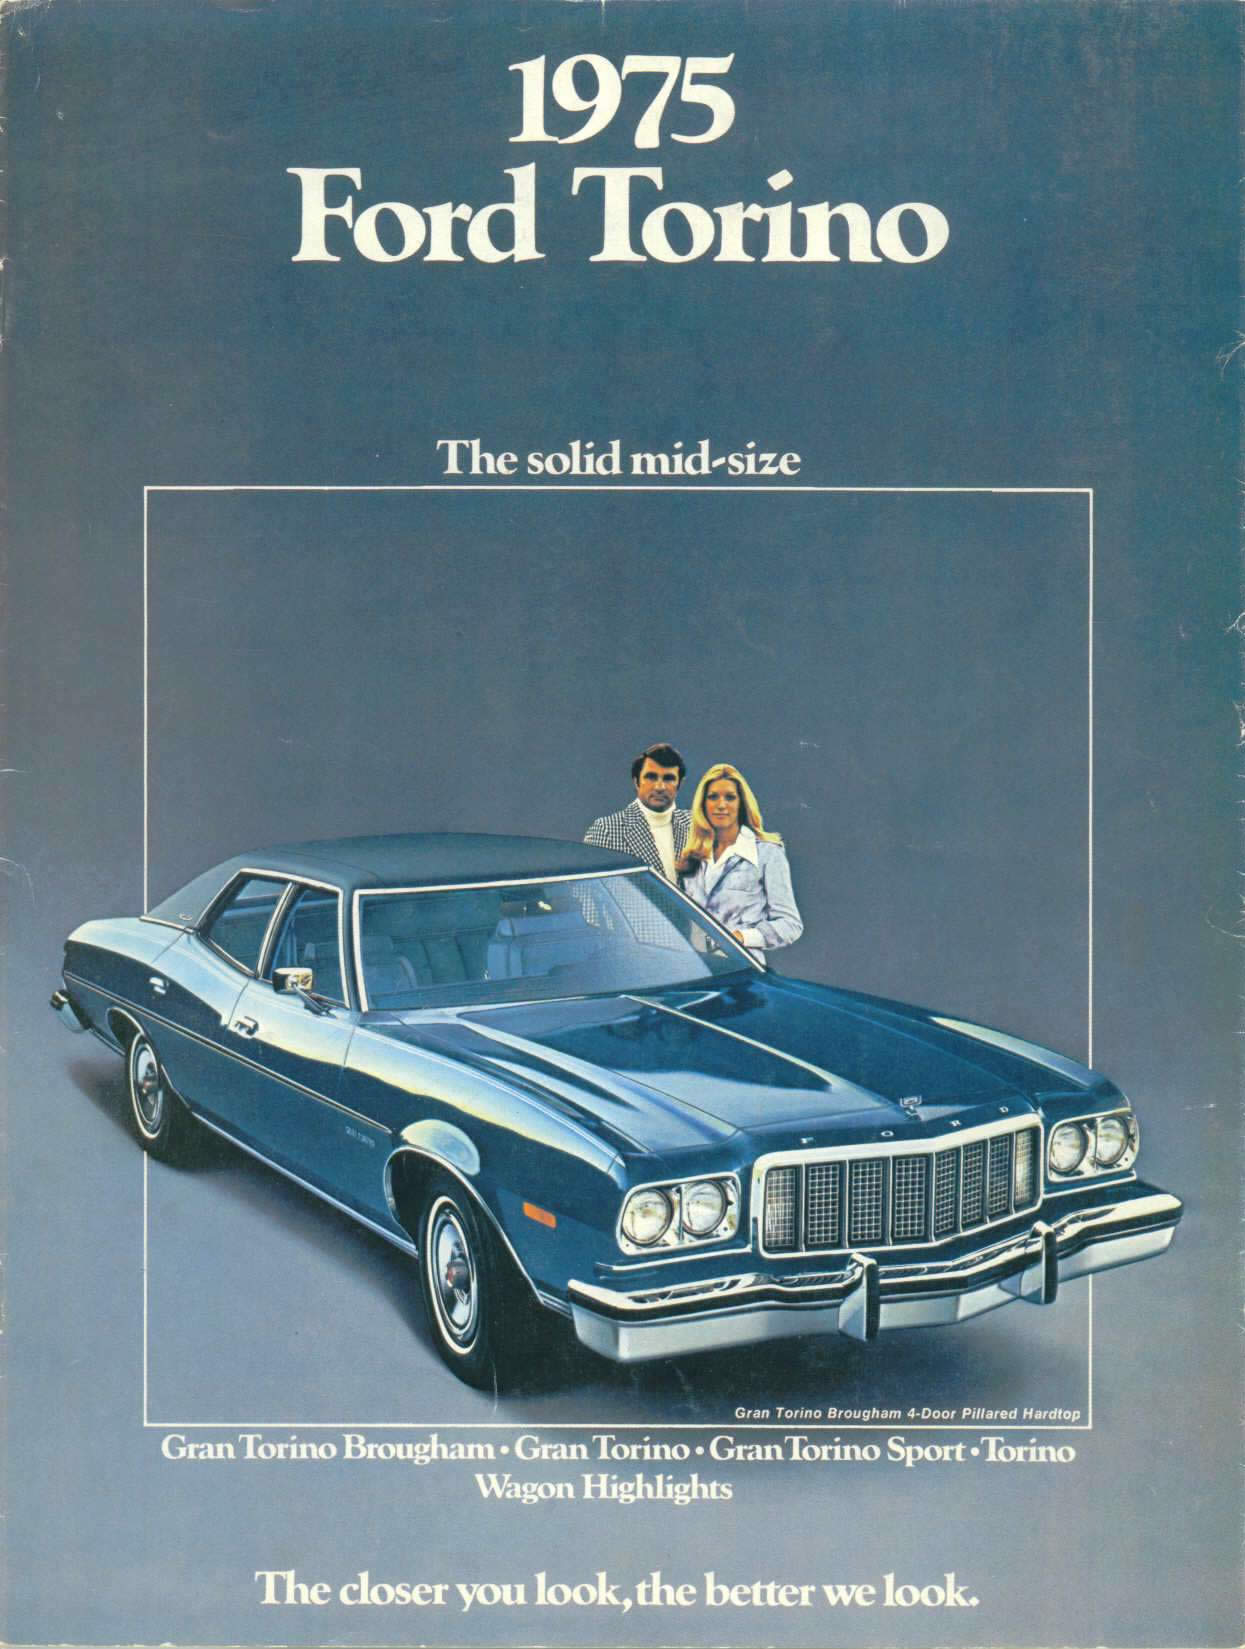 My Friend Todd Had A  Ford Gran Torino Elite This Brochure Is From